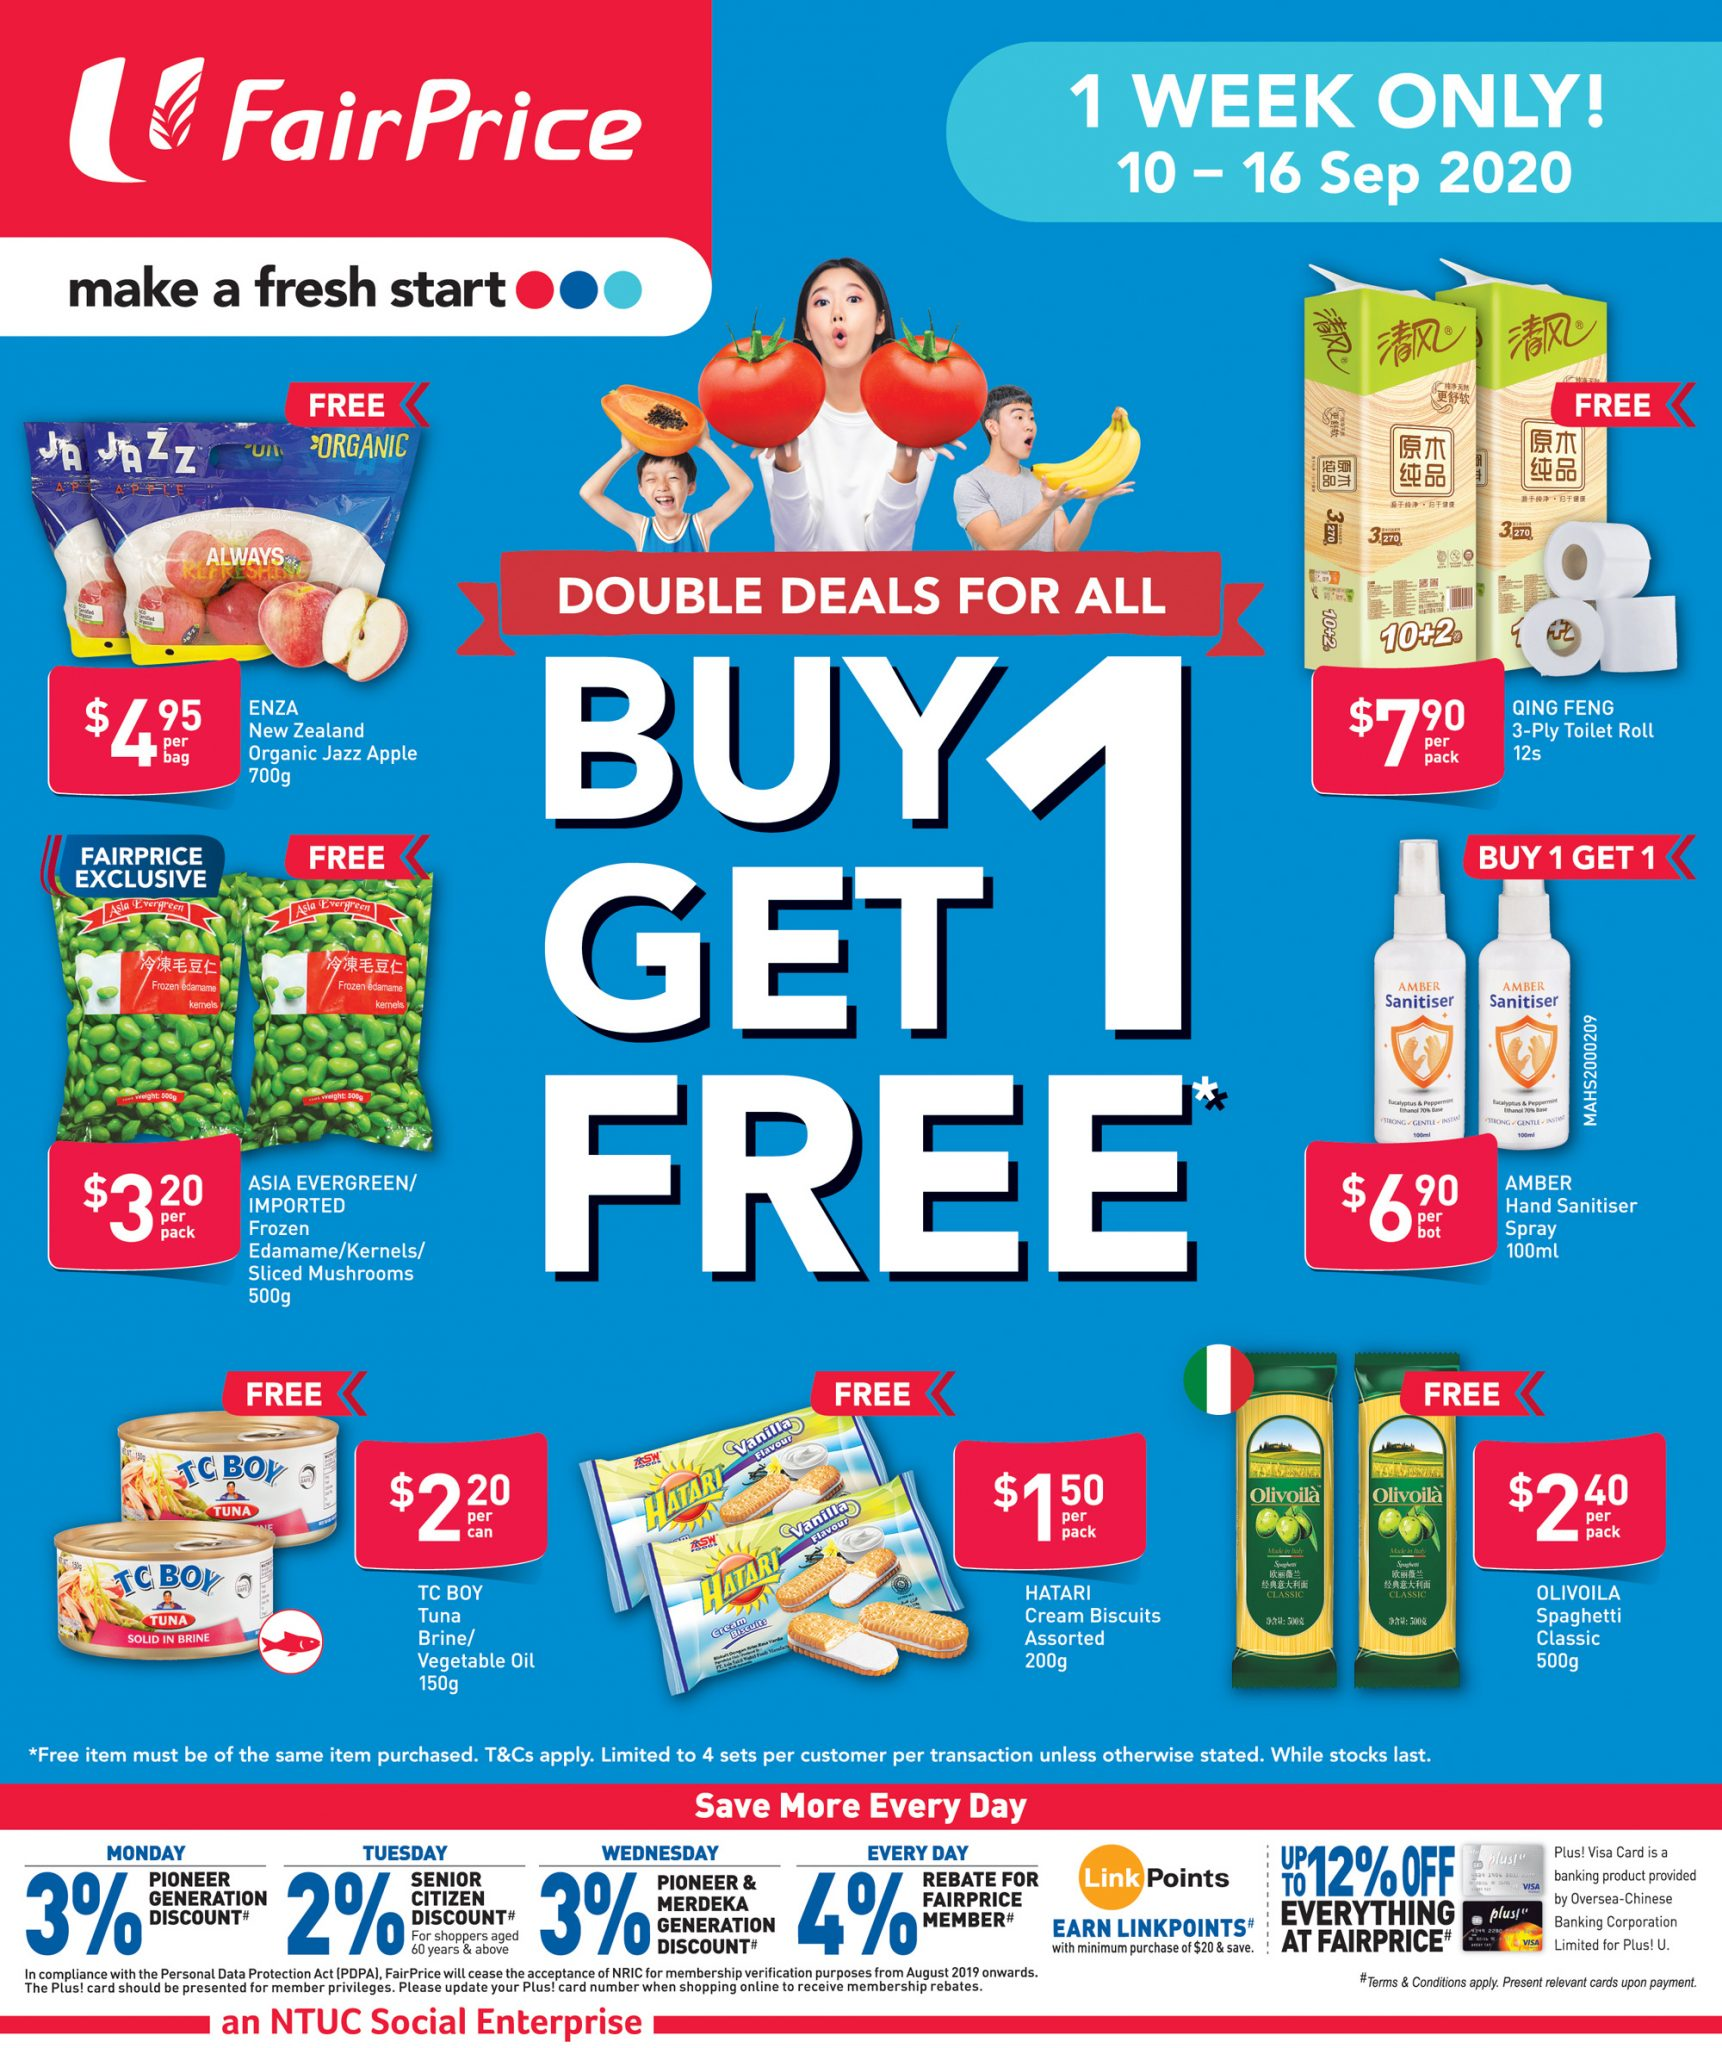 FairPrice 1-for-1 deals from now till 16 September 2020